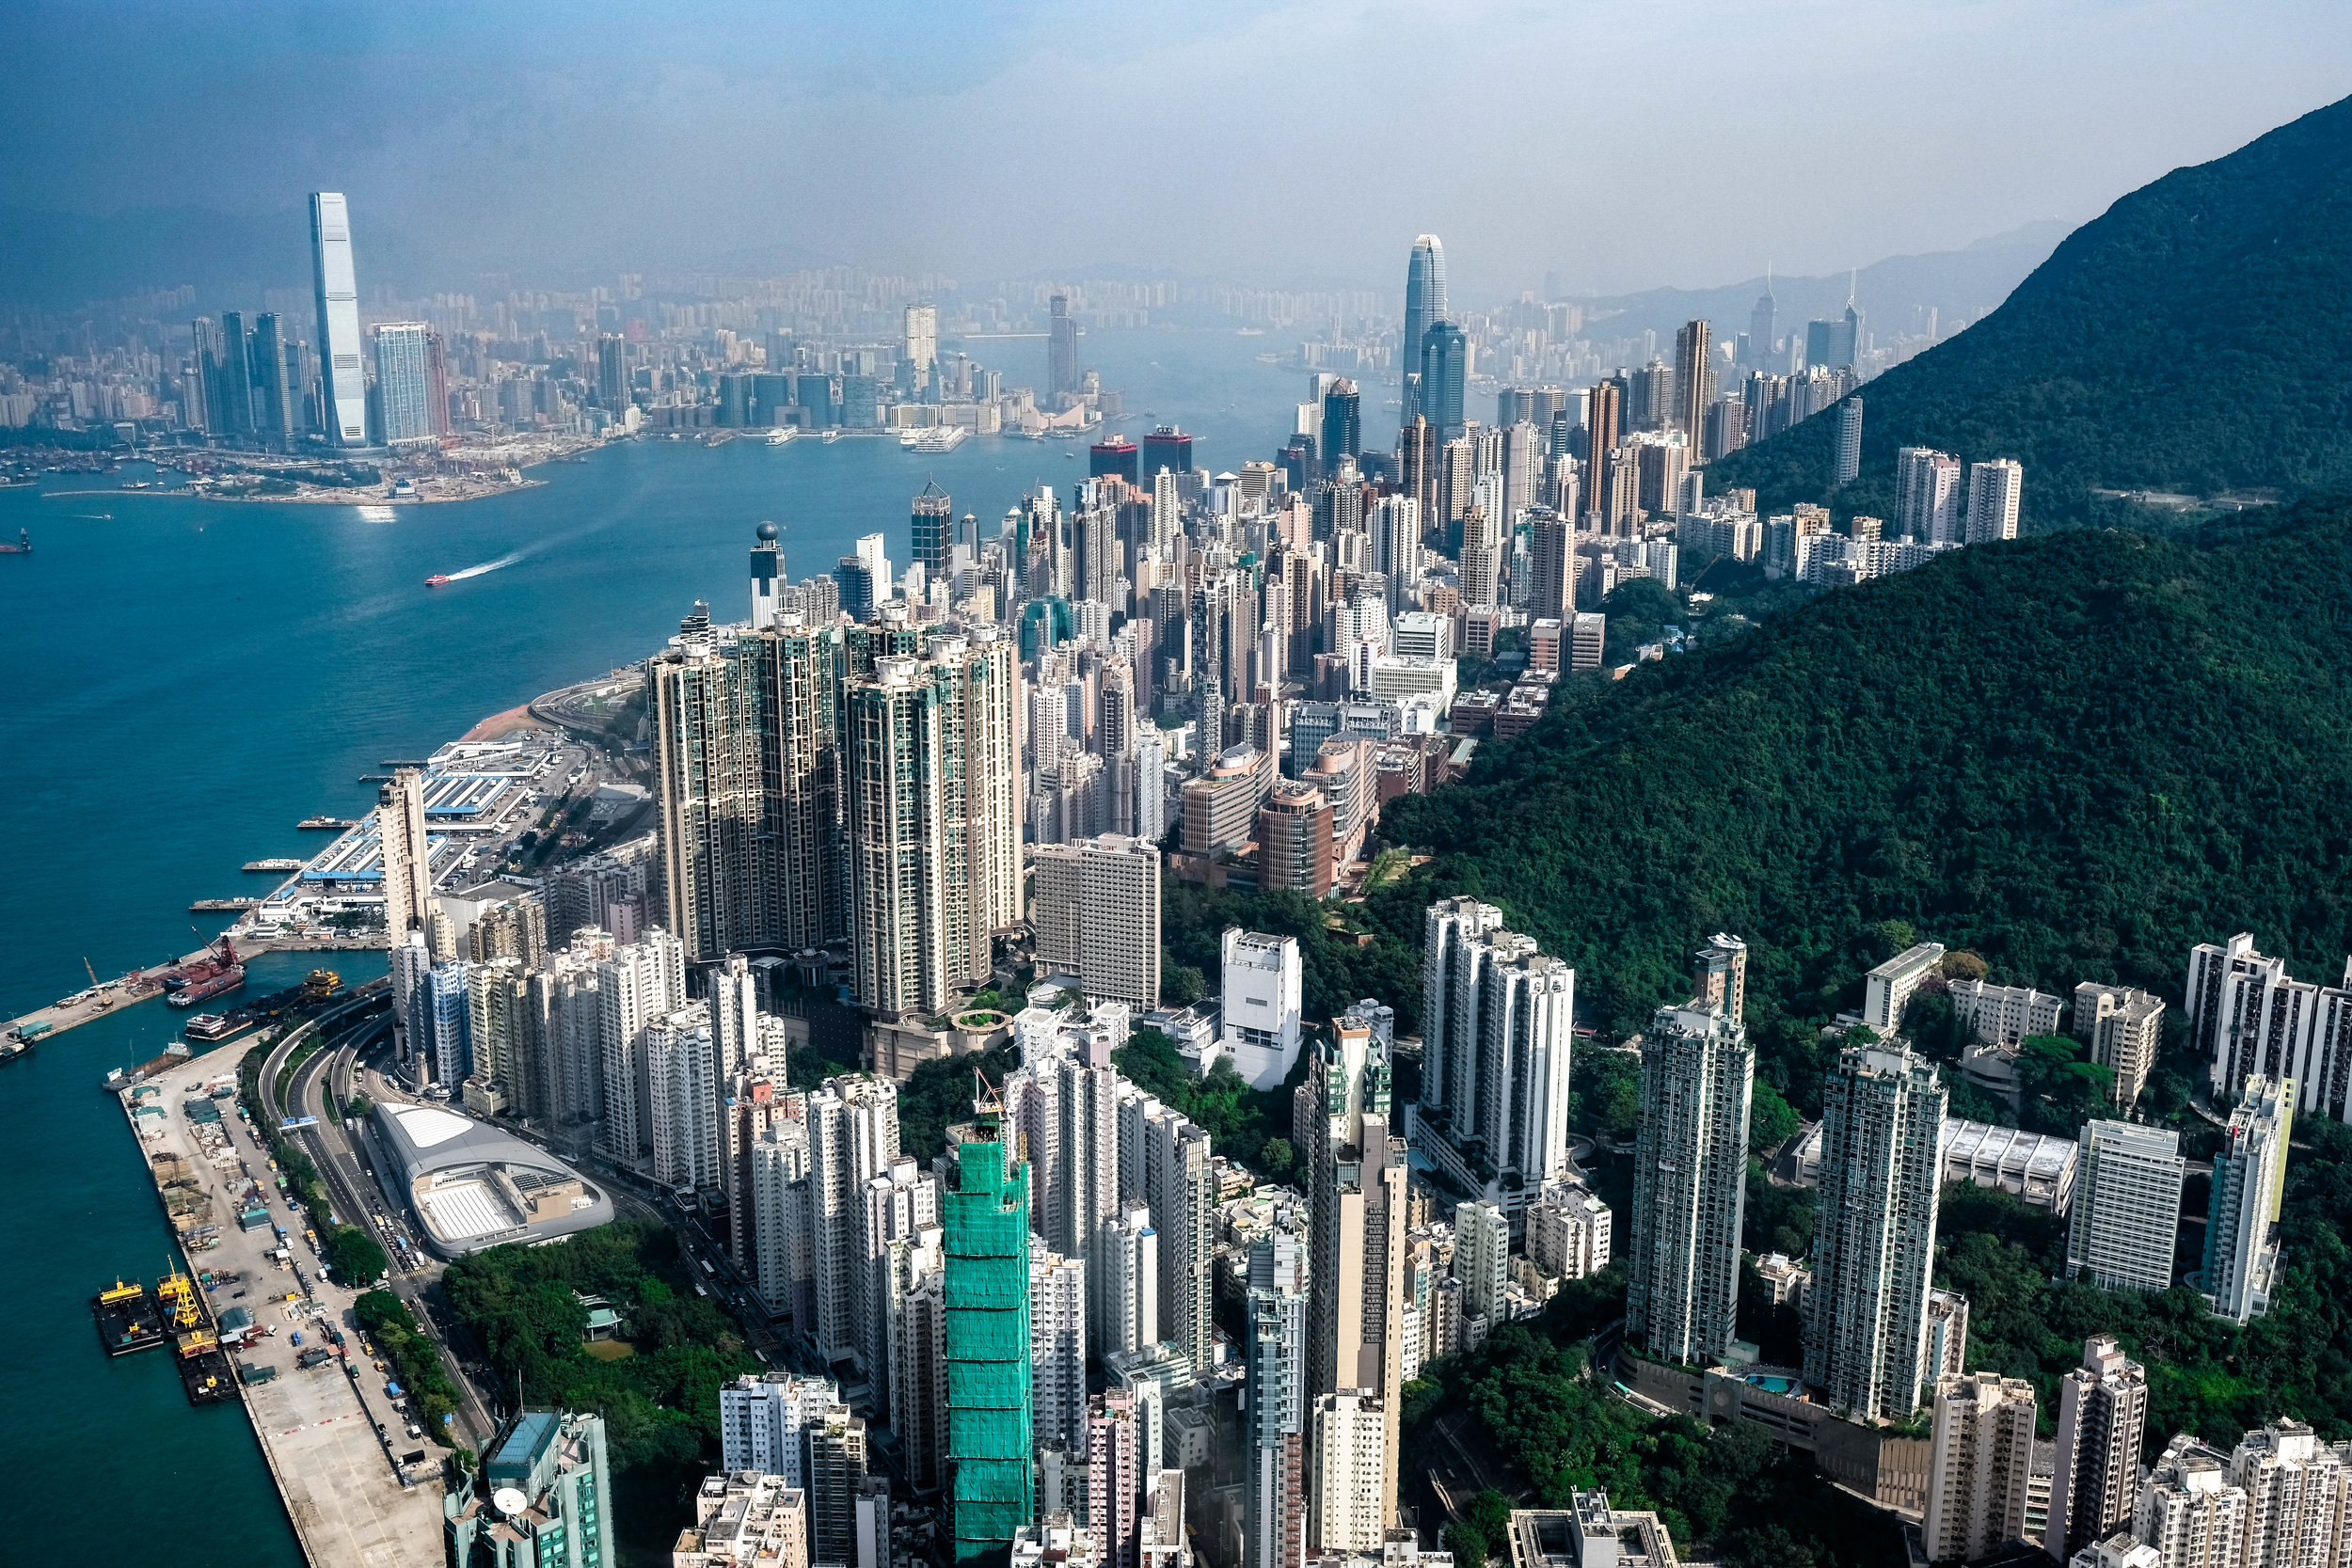 A view from the North West corner of Hong Kong Island.